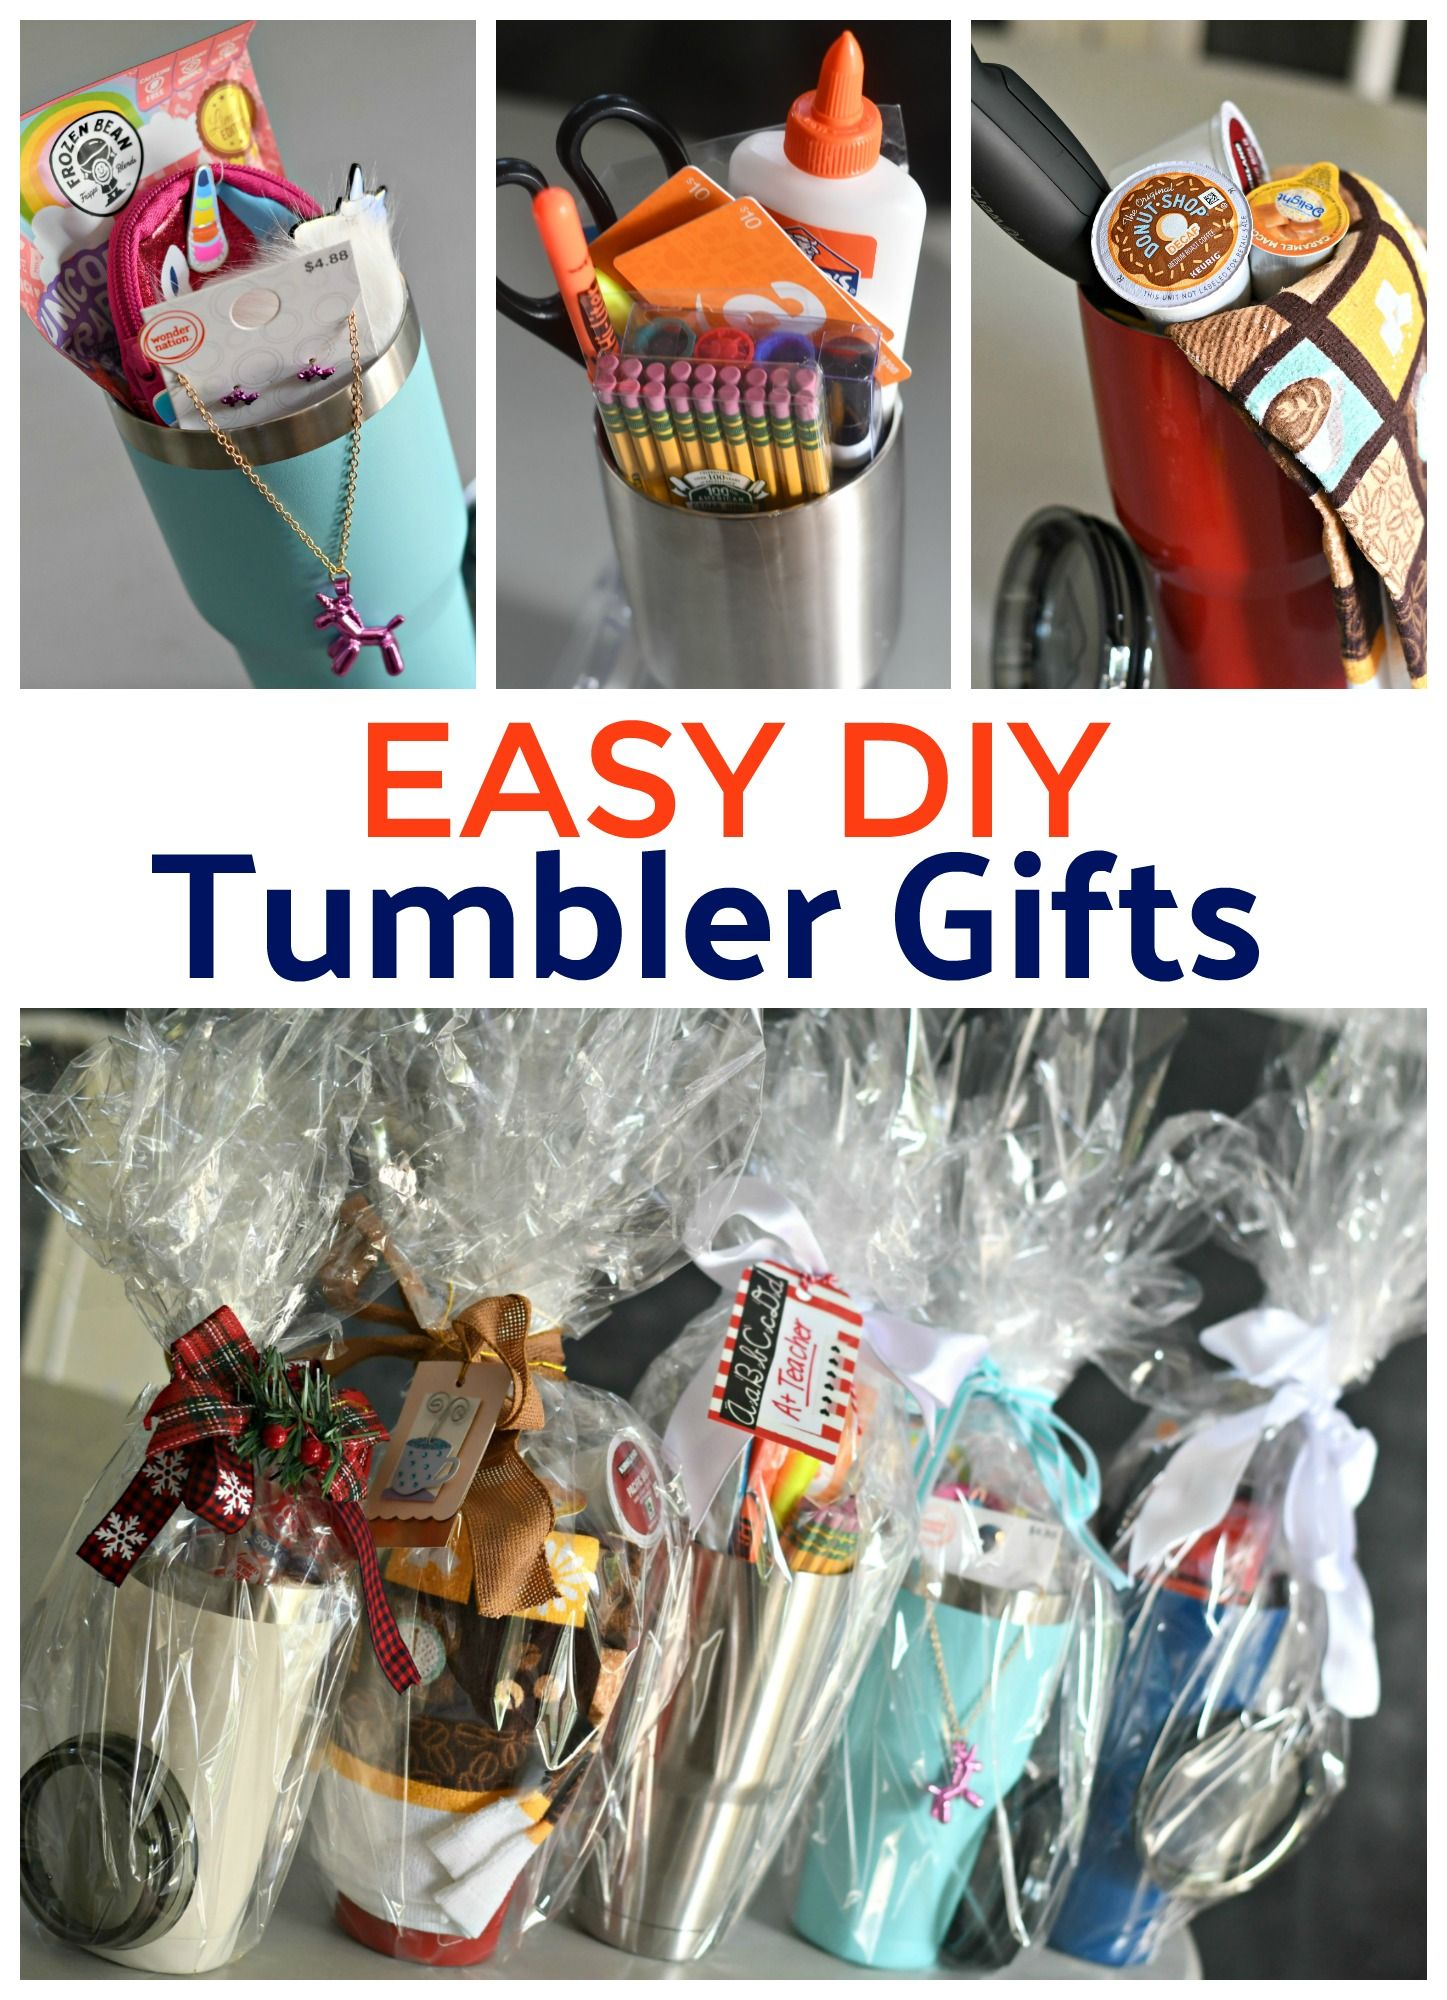 Make Fun And Useful Diy Gifts By Filling Stainless Steel Tumblers